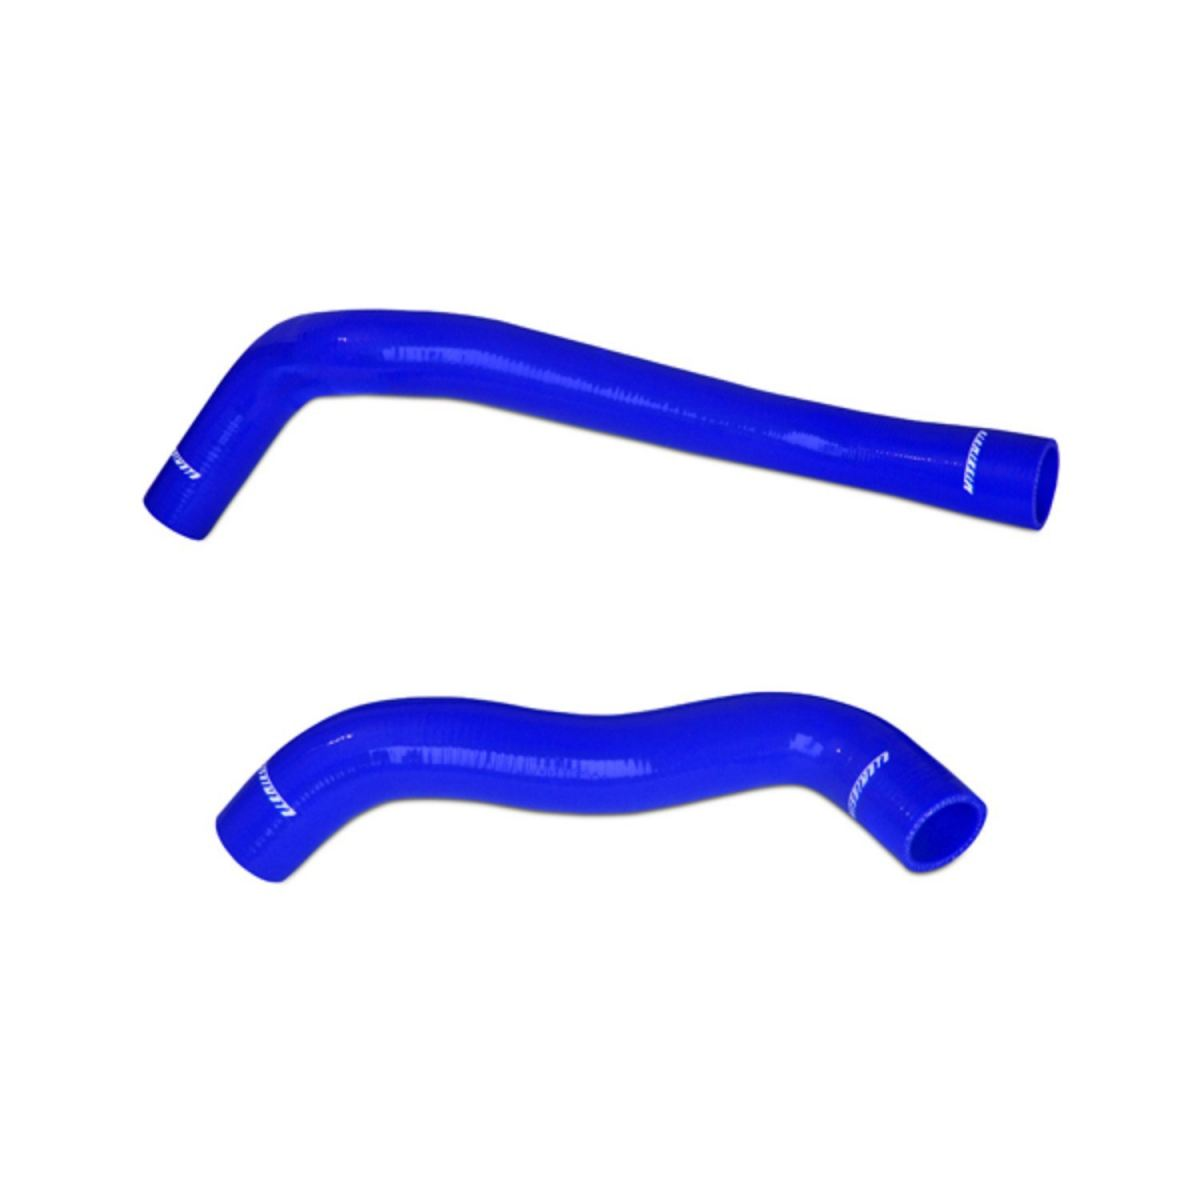 Ford 7.3L Powerstroke Silicone Coolant Hose Kit Silicone Hose Kits Ford Excursion 2000   Ford F-250 1999 to 2000   Ford F-250 Super Duty 1999 to 2000   Ford F-350 Super Duty 1999 to 2000   Ford F-450 Super Duty 1999 to 2000   Ford F-550 Super Duty 19